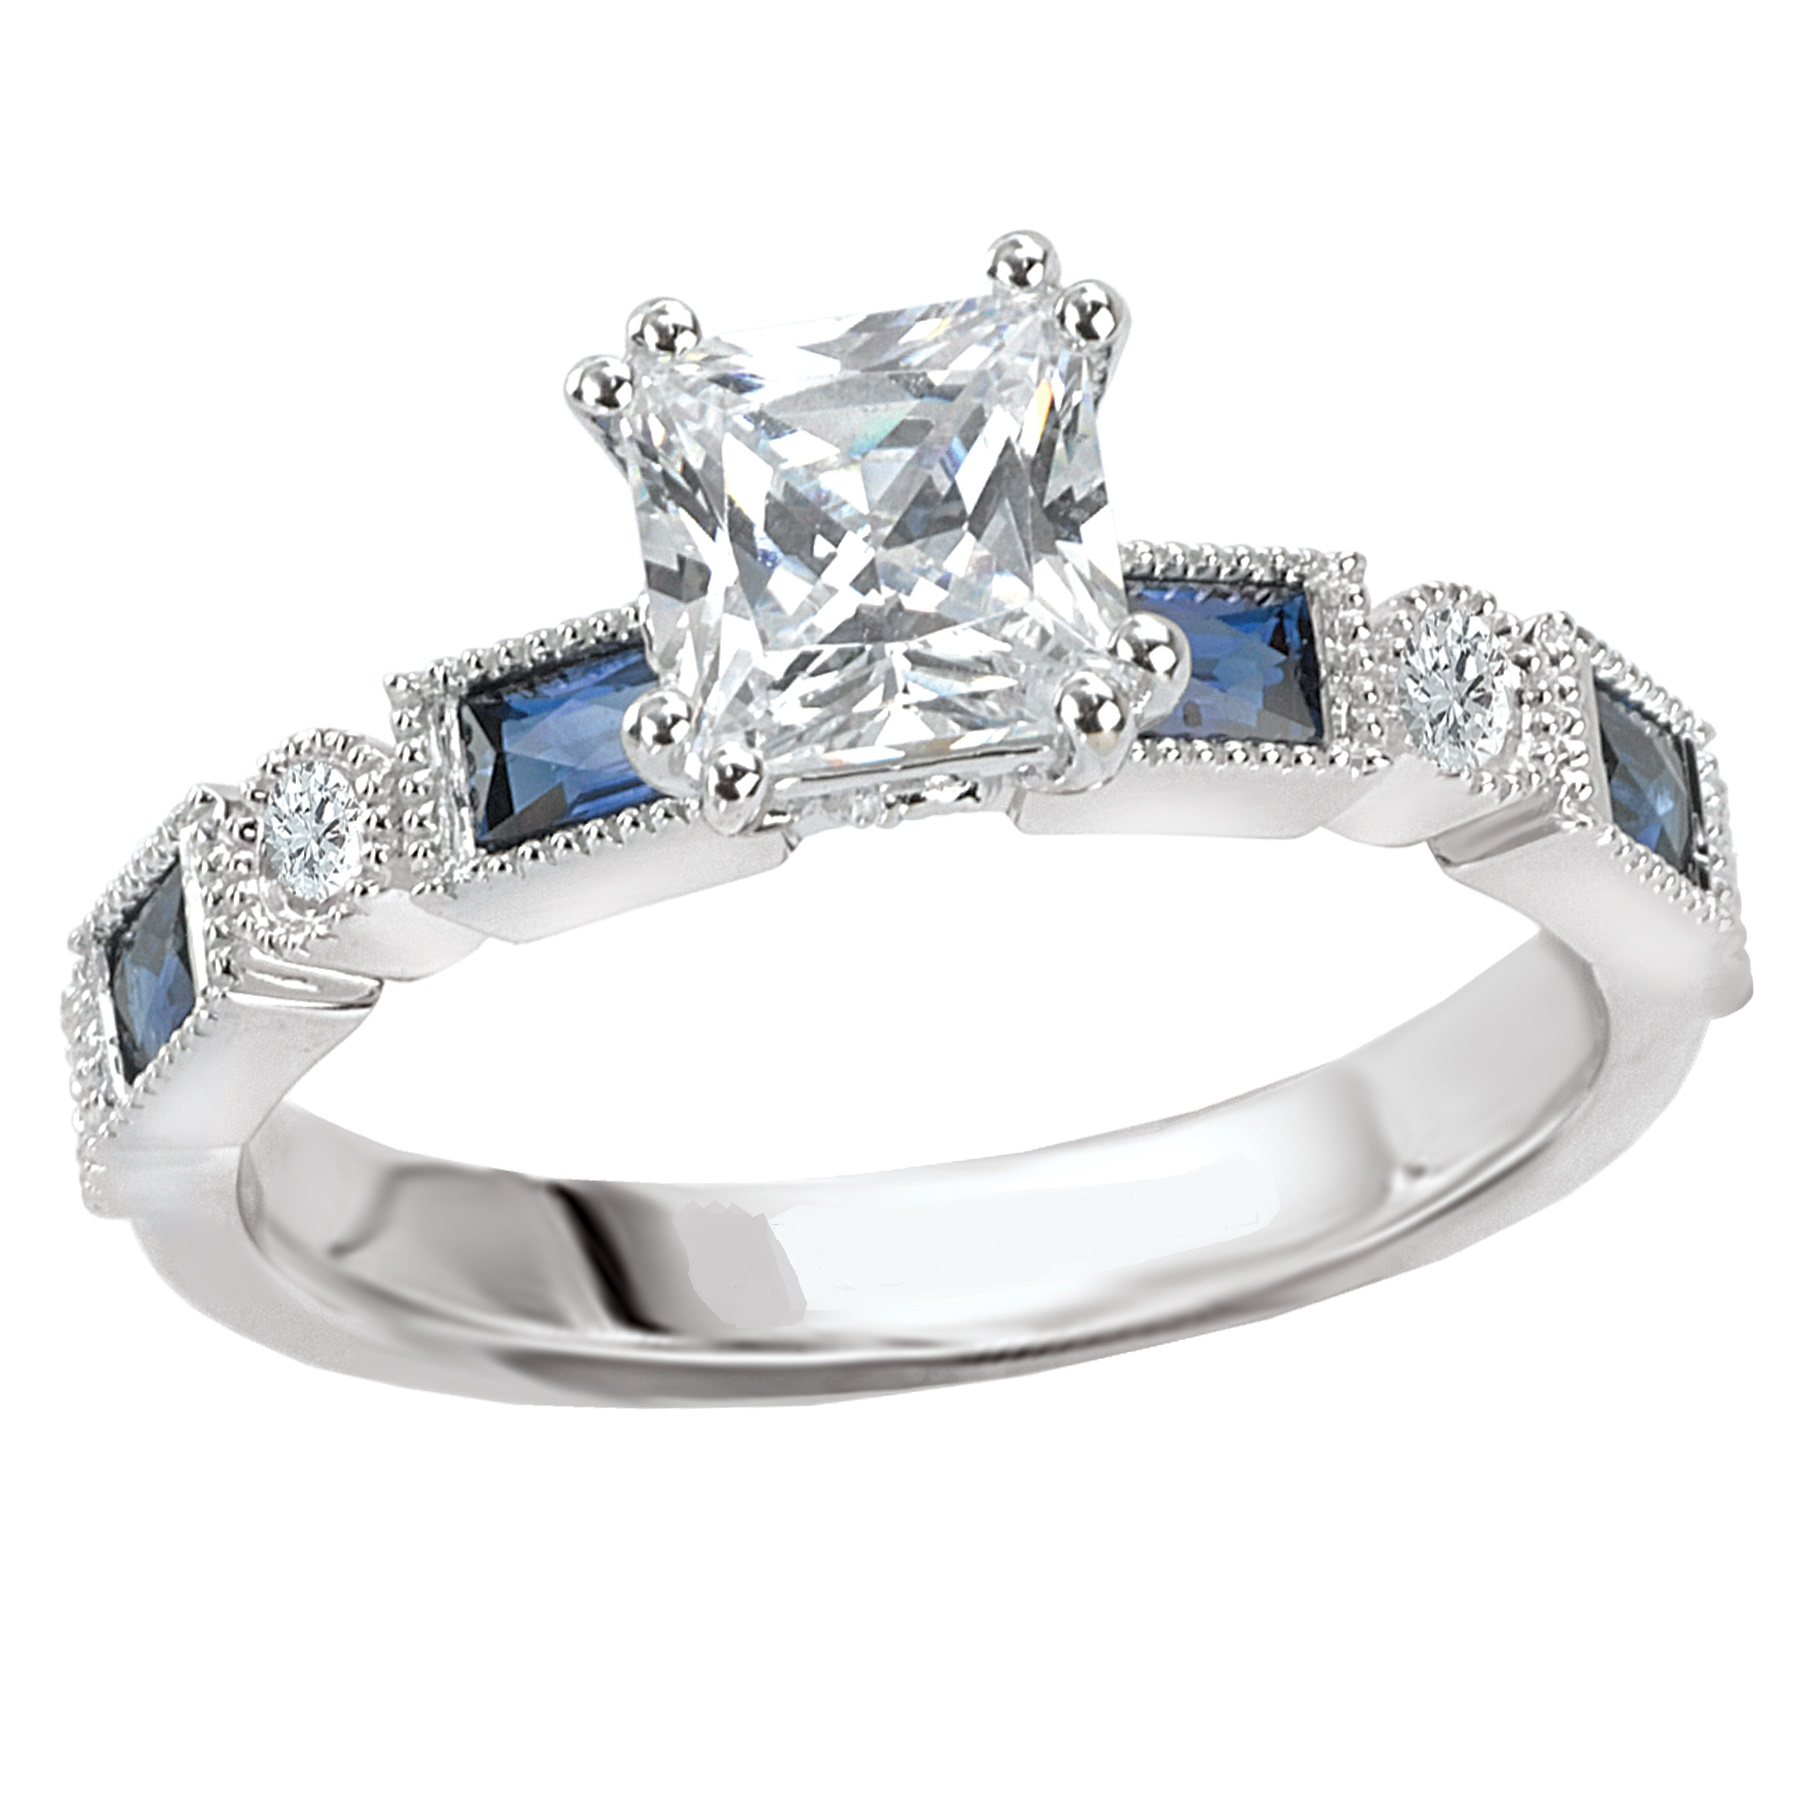 18K WG Diamond and Sapphire Engagement Ring by Romance Diamond